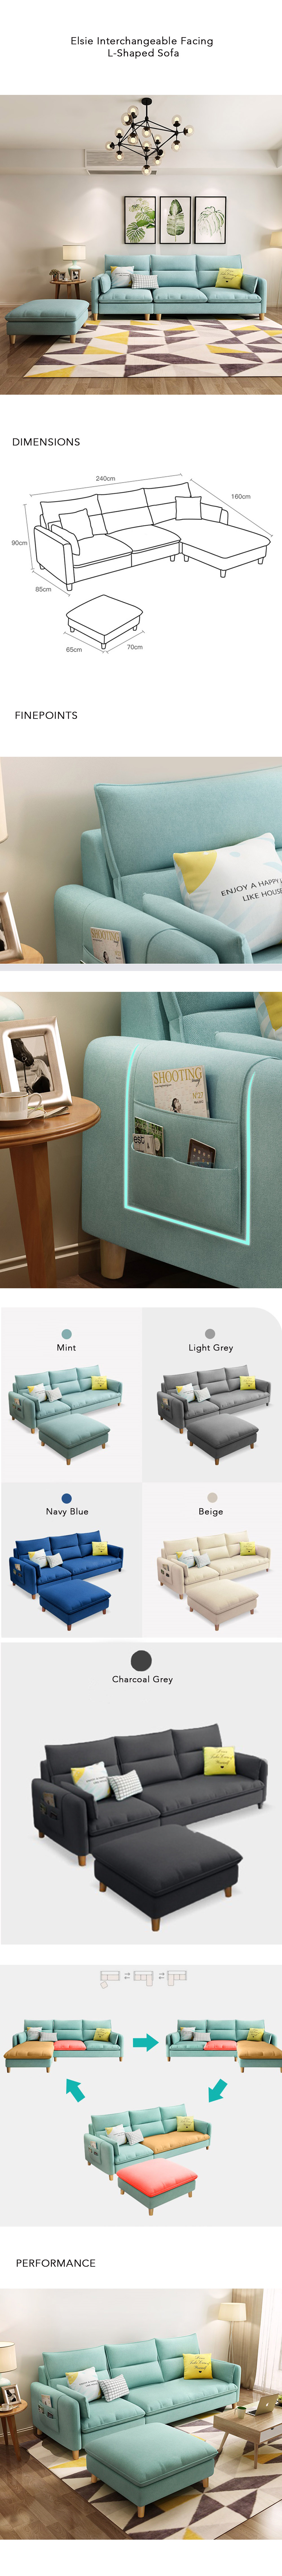 Elsie_Interchangeable_Facing_L_Shaped_Sofa_specs_by_born_in_colour